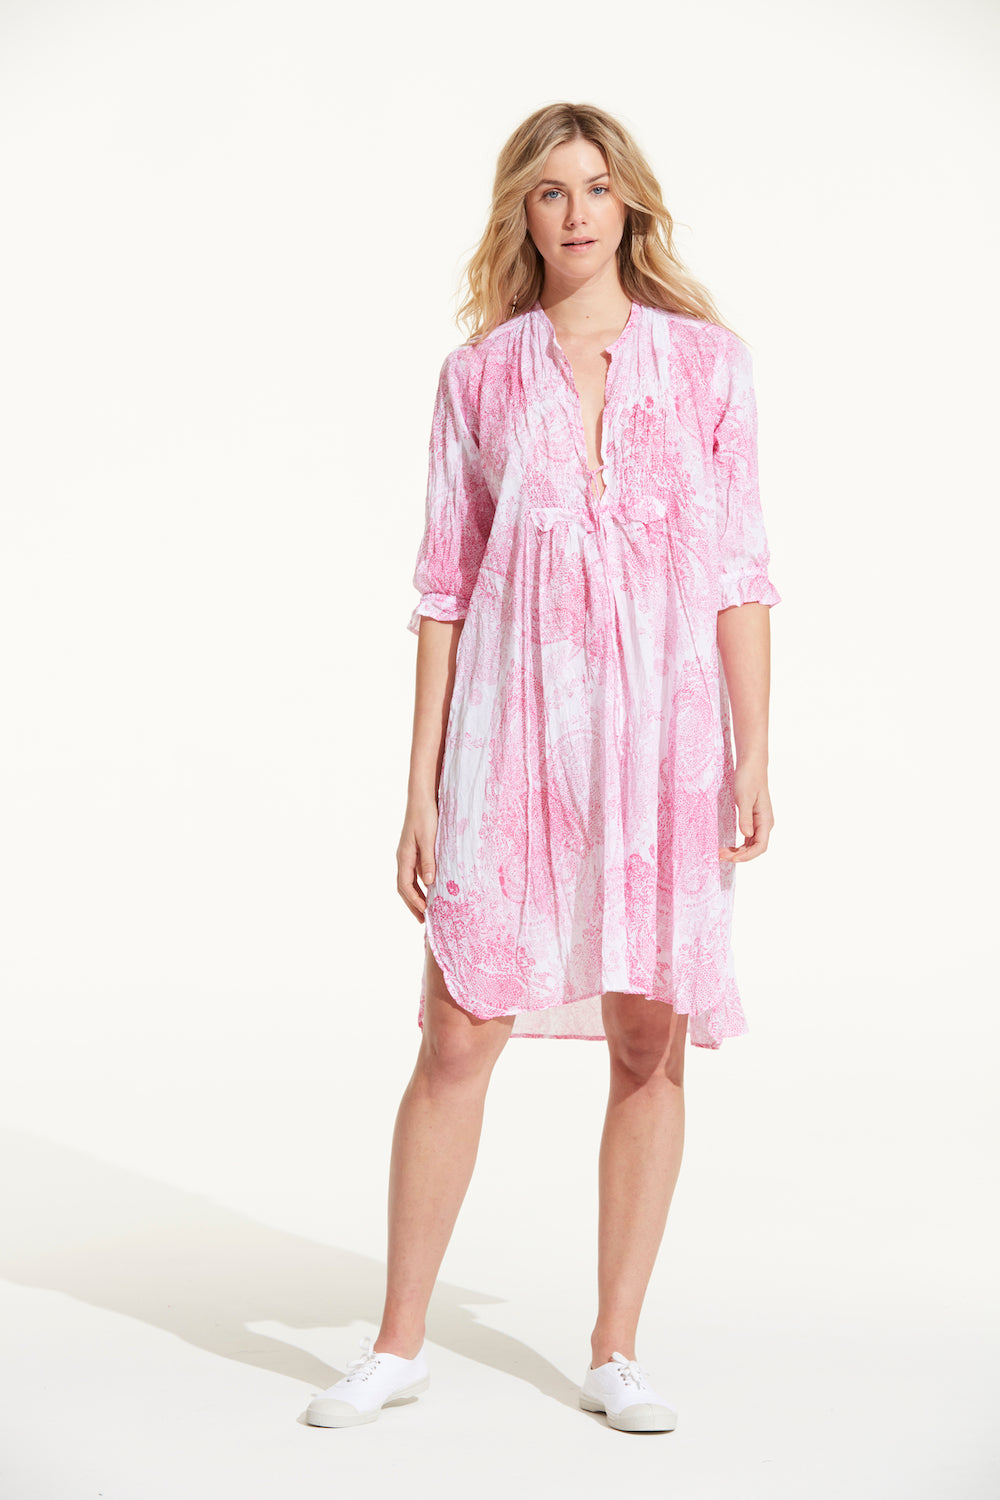 ONE SEASON AUDREY ANTIBES DRESS